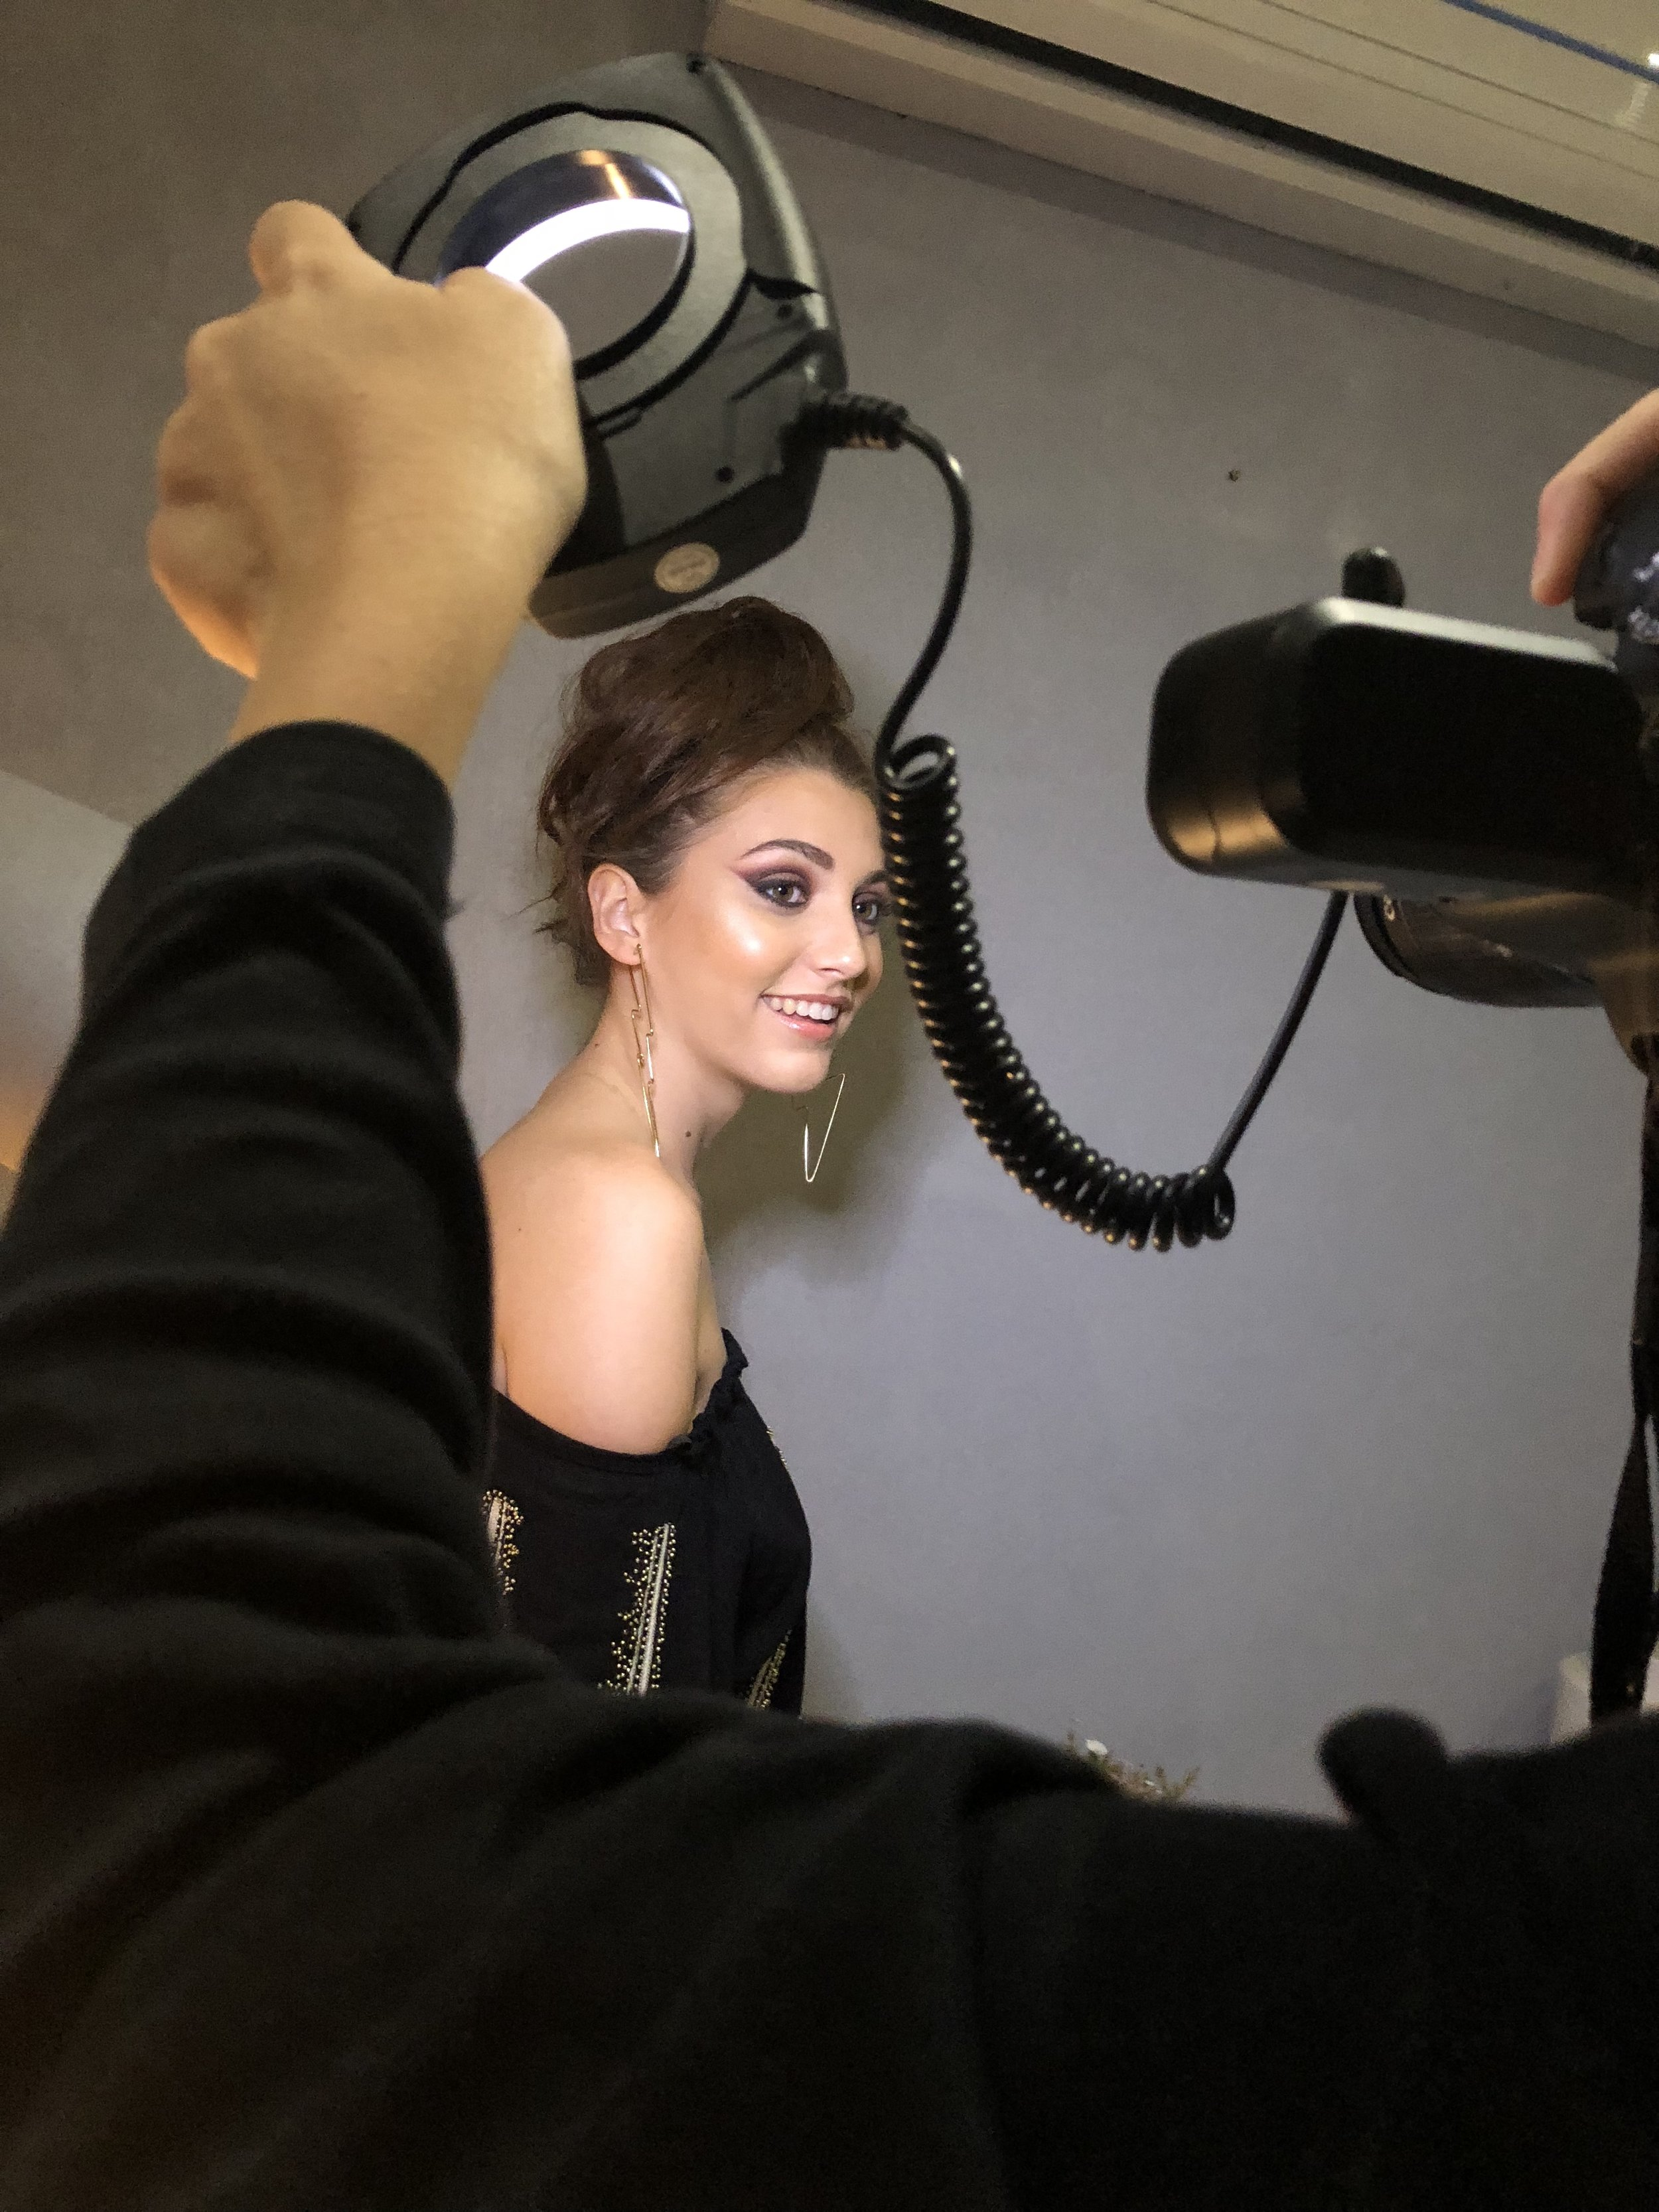 Traineeship Pathway 5:HAIR STYLING & L1 BARBERING - We are excited to offer this 6 month Traineeship programme for any 16-18 year olds wanting a career in Hairdressing and barbering for salons, Music Video's, live events and prom and bridal jobs.-This VTCT Level 2 diploma course covers all the basics of hair styling but specialises in editorial fashion, instagram ,glam and natural hair ups for prom, models and braiding techniques, working with lighting and camera angles and dancers to create an original creative music video for the singers you'll be working with .We will be working in collaborating with MD Productions with their young artists and live productions to create show-stopping hair styles for any jobs they have coming up.You will be in college 4 days a week, consisting of hair and barbering lessons, industry placements, working in the photography studio and portfolio building and research as well as improving maths and english skills , you can progress onto level 3 at the end of this course or opportunities will be given to work as a freelance make up artists for well knows and reputable make up & hair companies .